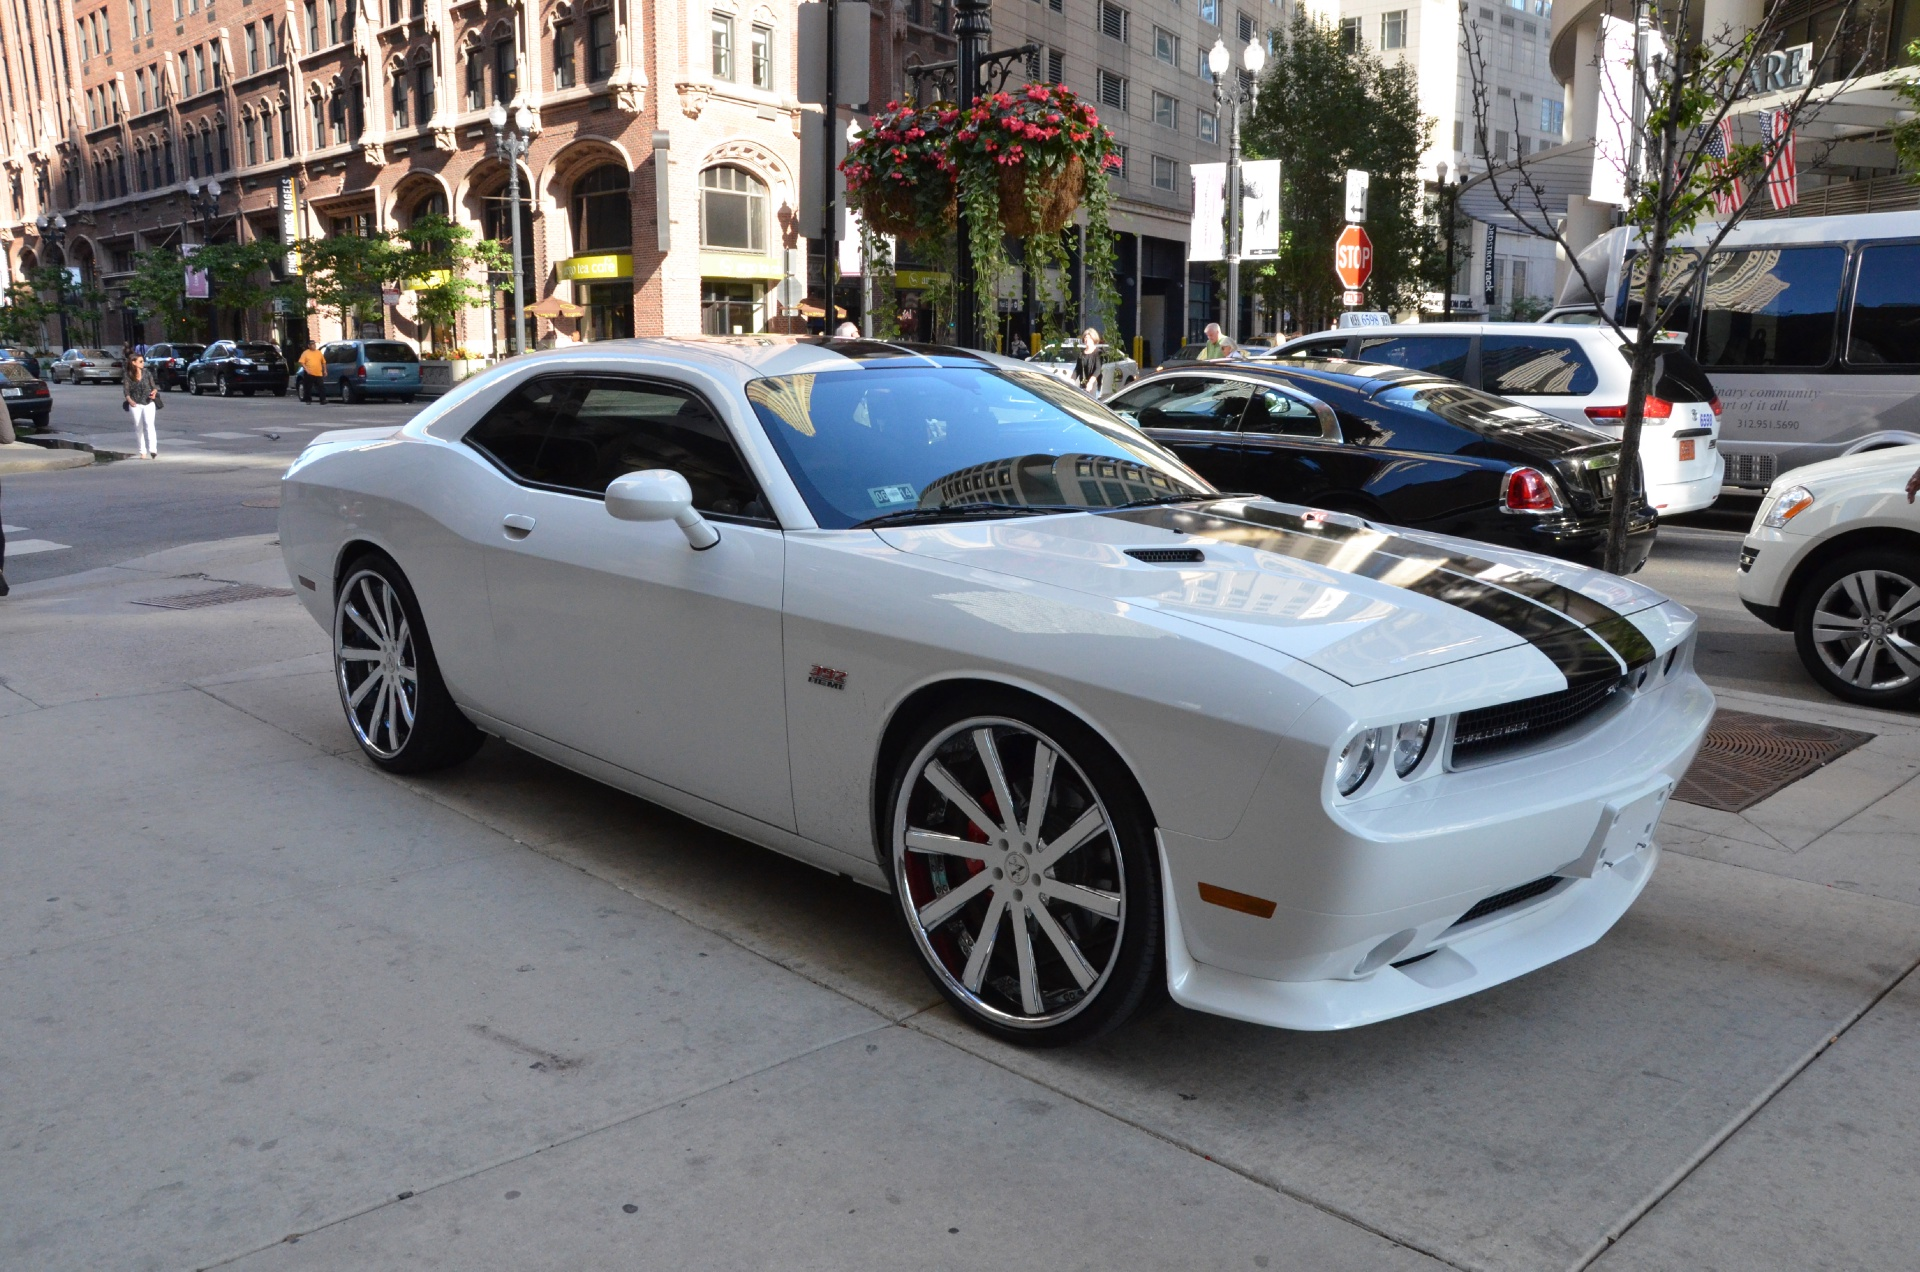 2012 dodge challenger srt8 yellow jacket stock 75567 for sale near chicago il il dodge dealer. Black Bedroom Furniture Sets. Home Design Ideas